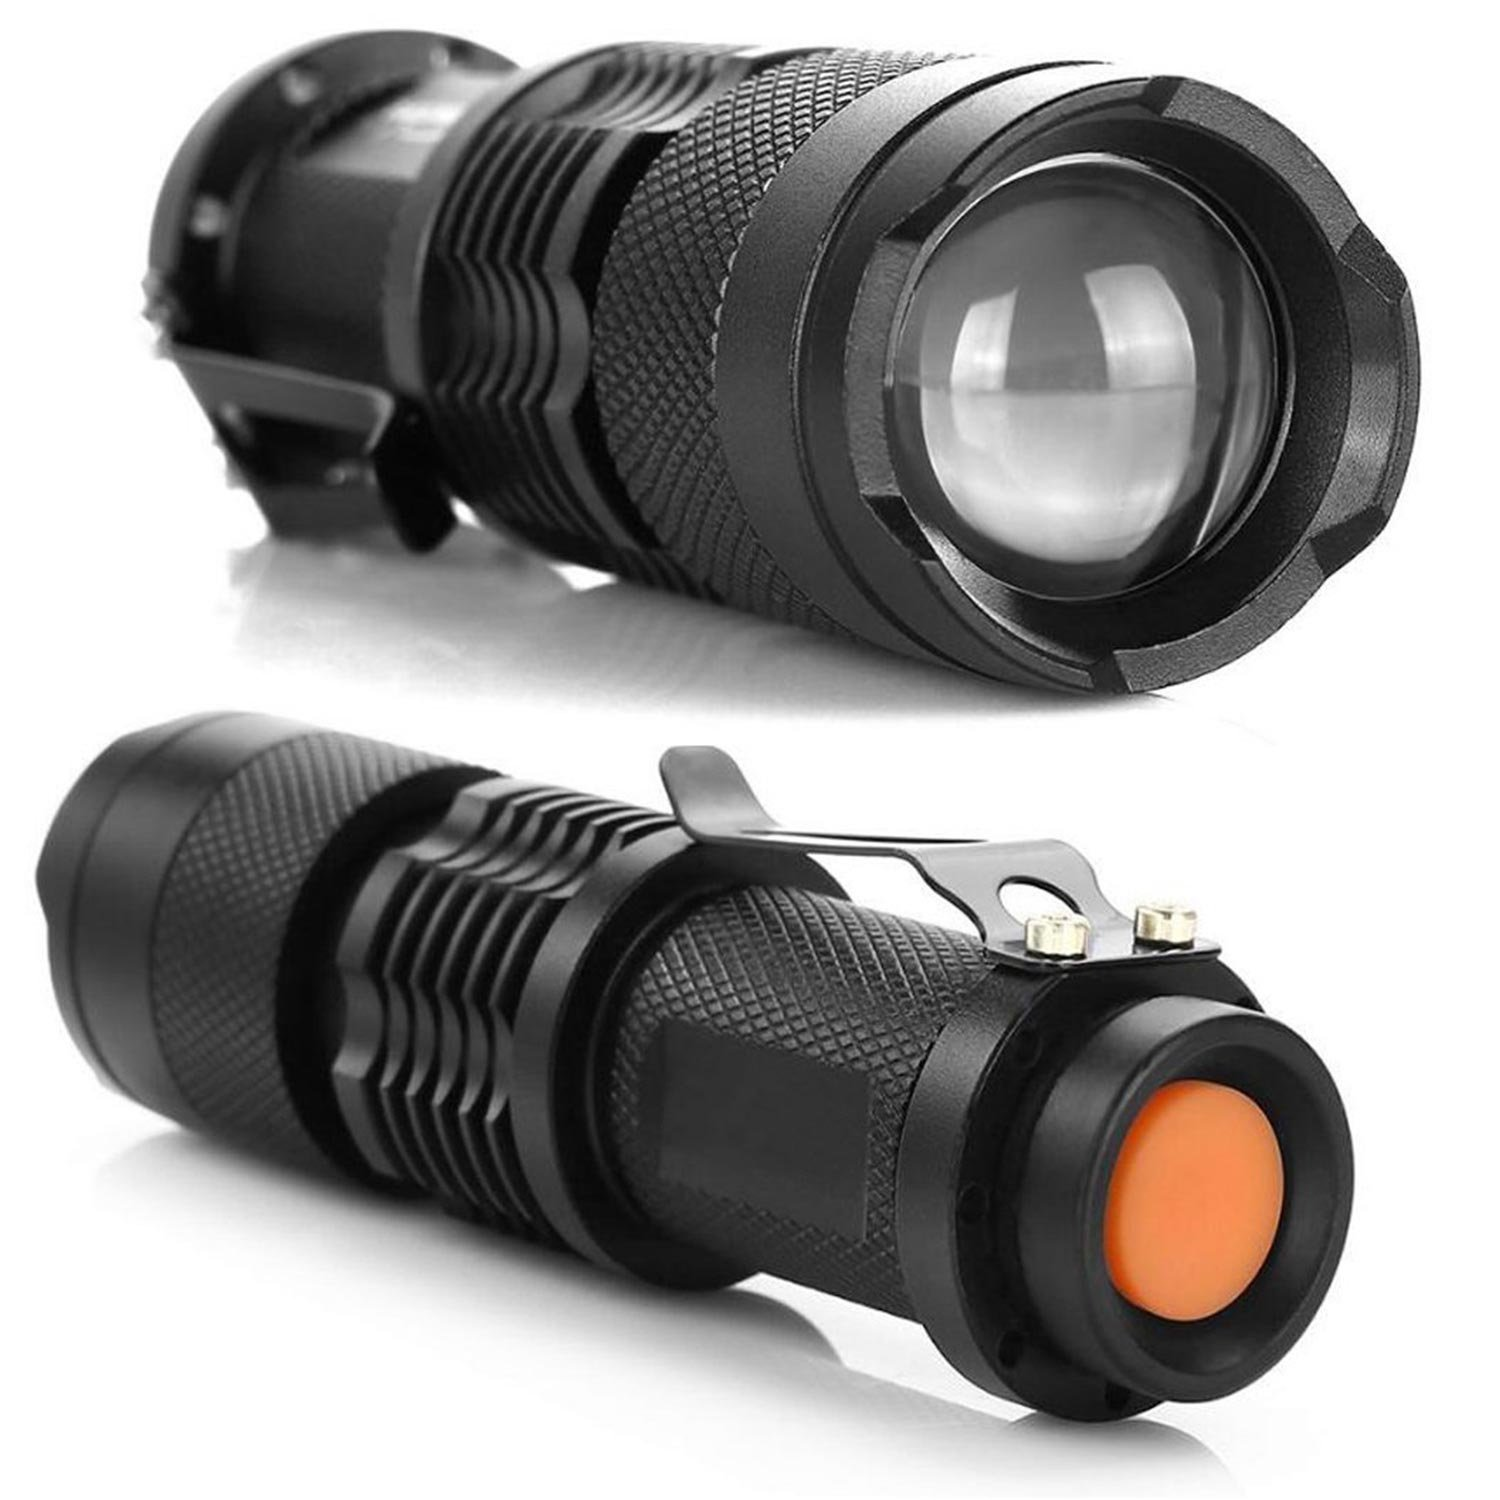 CoreLife 3 Pack Small Flashlights High Lumens LED Zoom and 3 Modes Black Tactical Flashlights